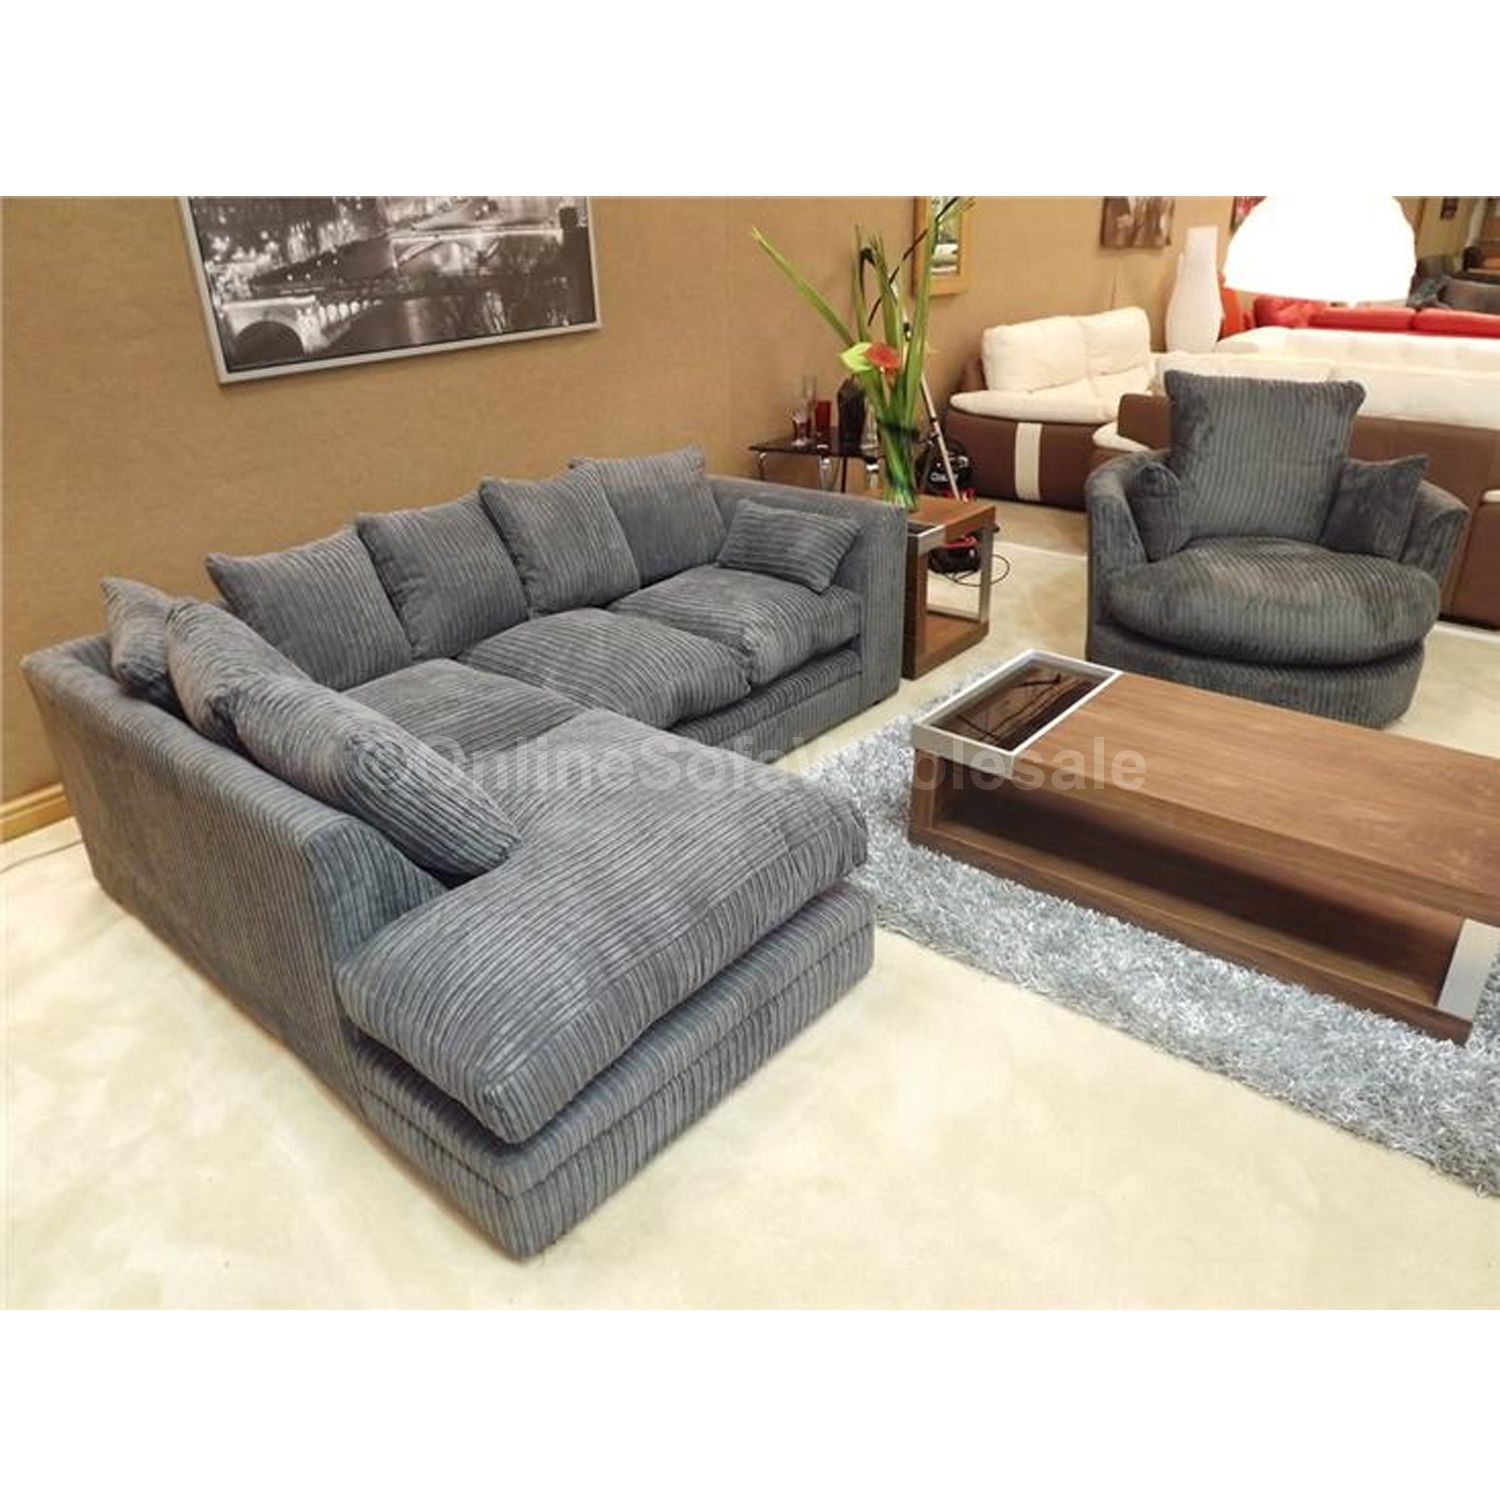 56 Swivel Sofa Chair Seater Sofa And Swivel Chair Dfs In Cardiff With Sofa With Swivel Chair (View 7 of 15)